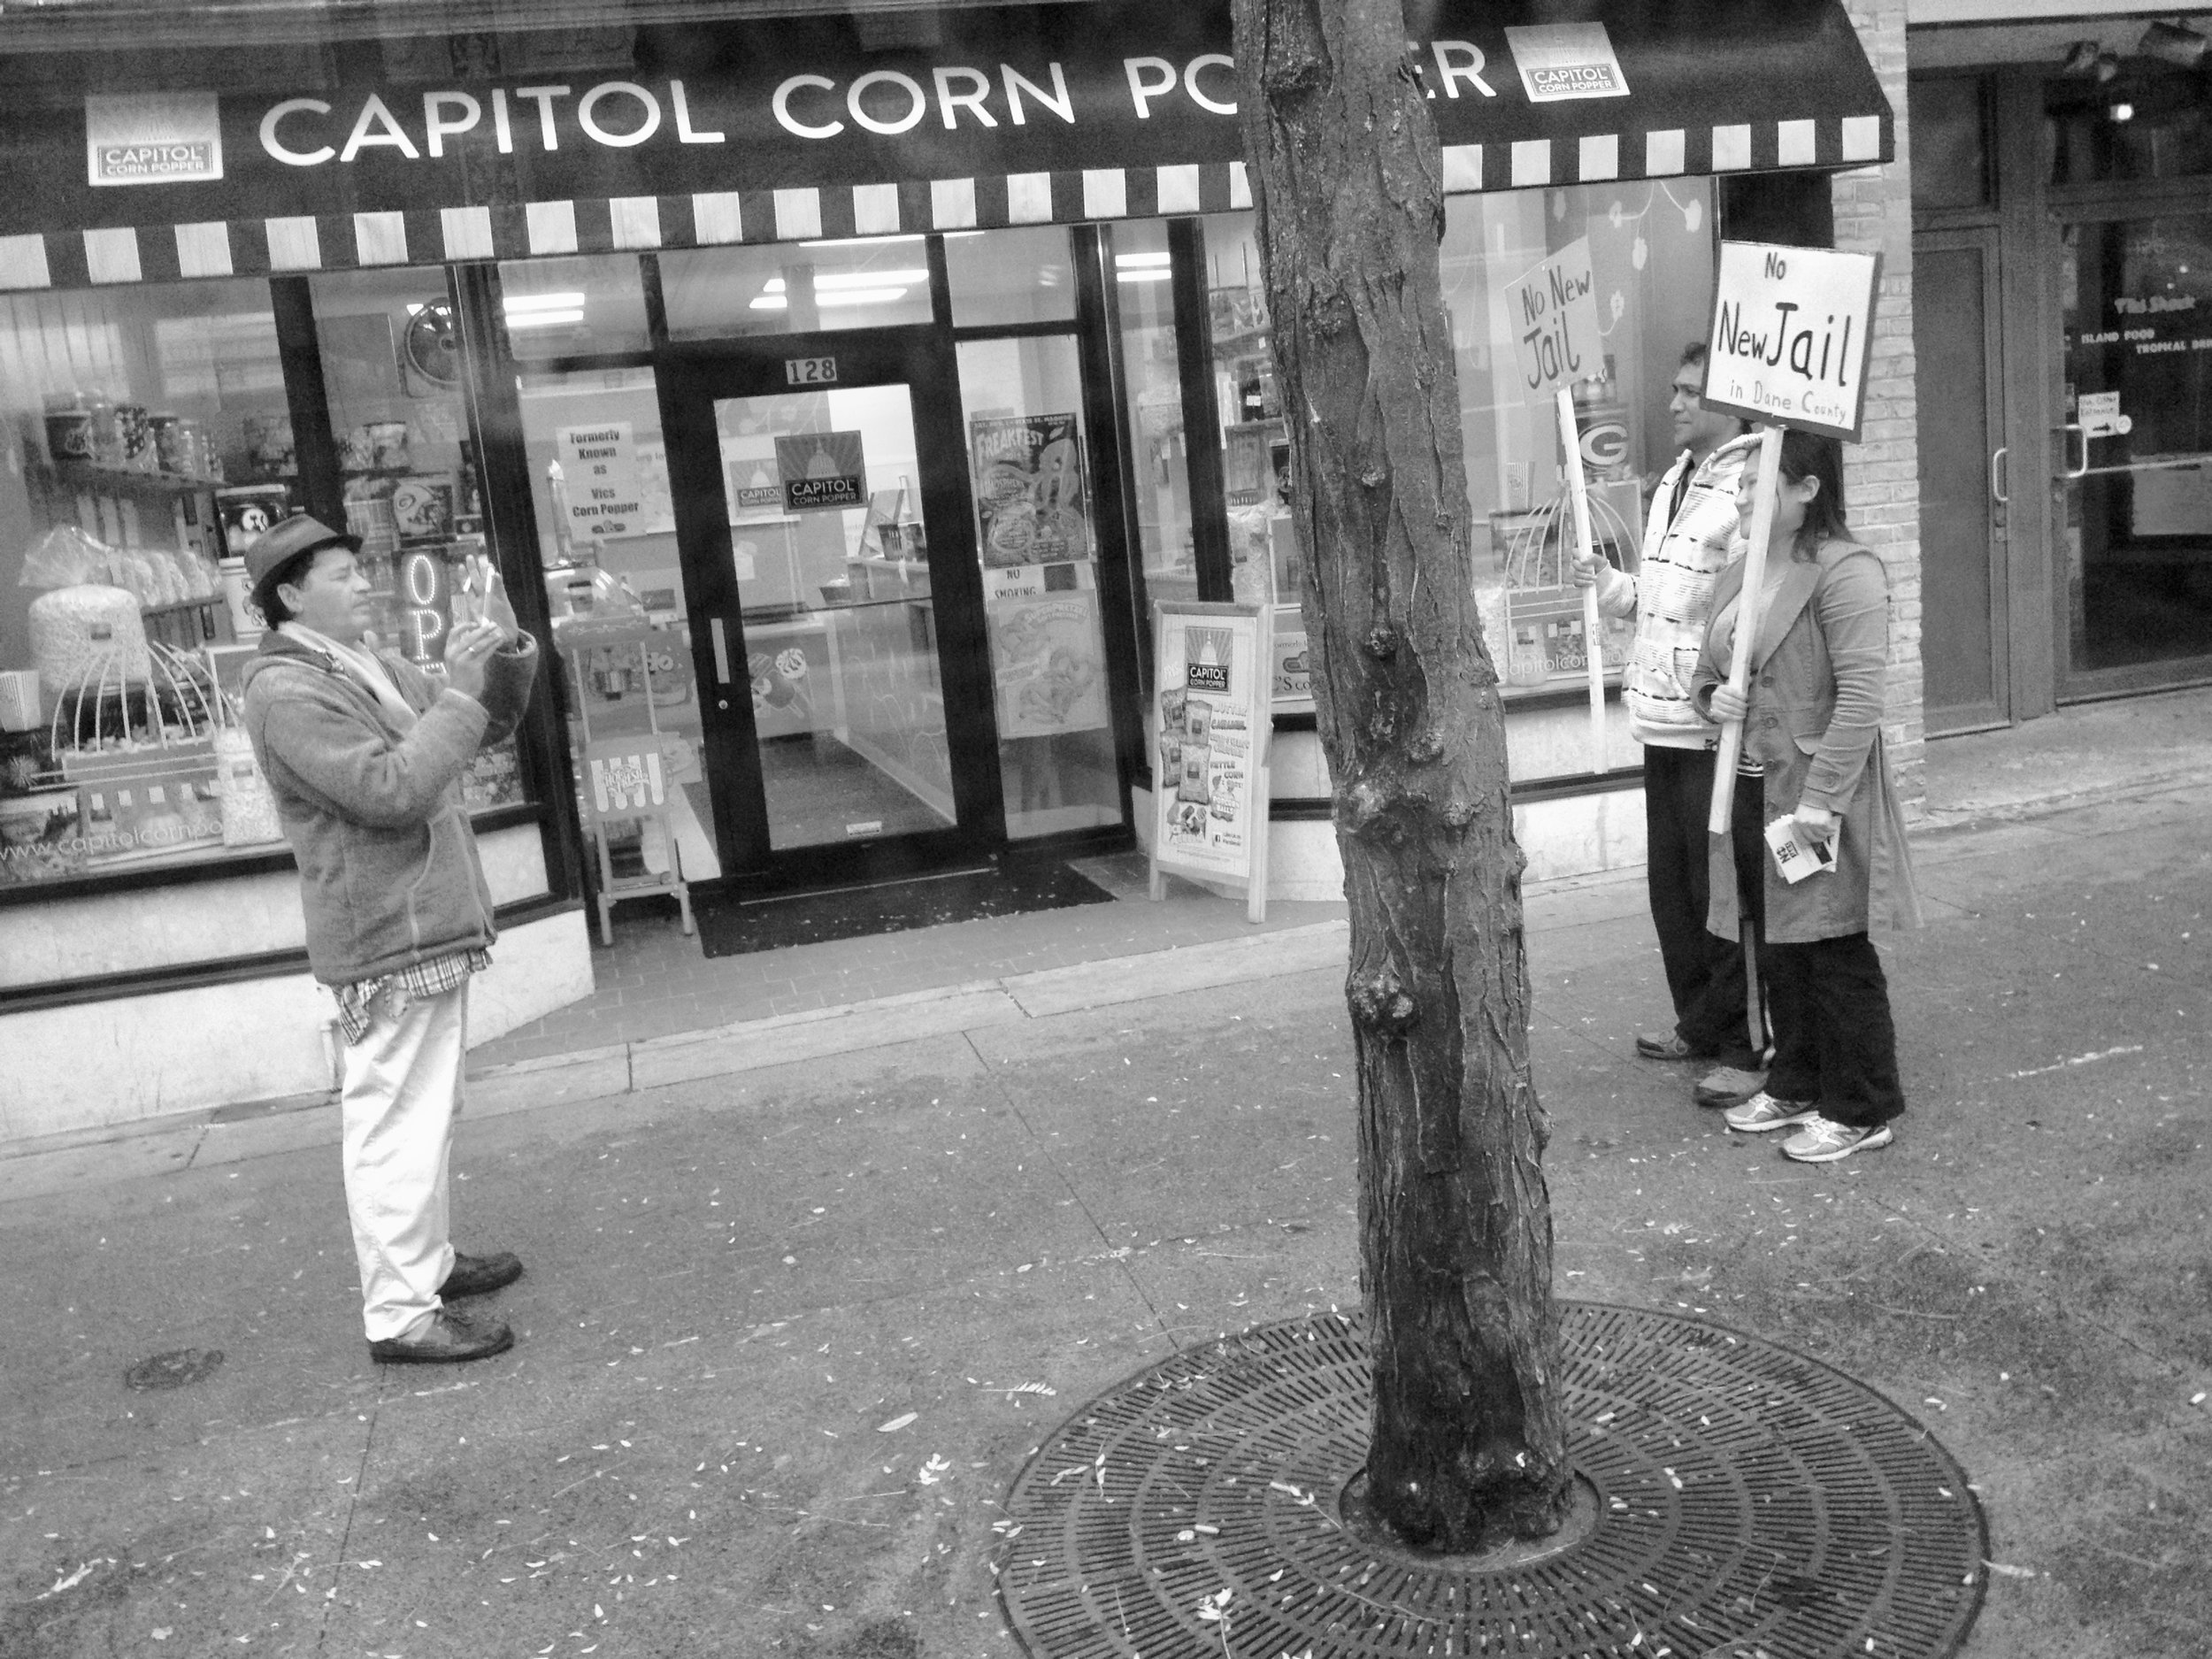 No New Jail. State Street. Madison, Wisconsin. October 2014 © William D. Walker